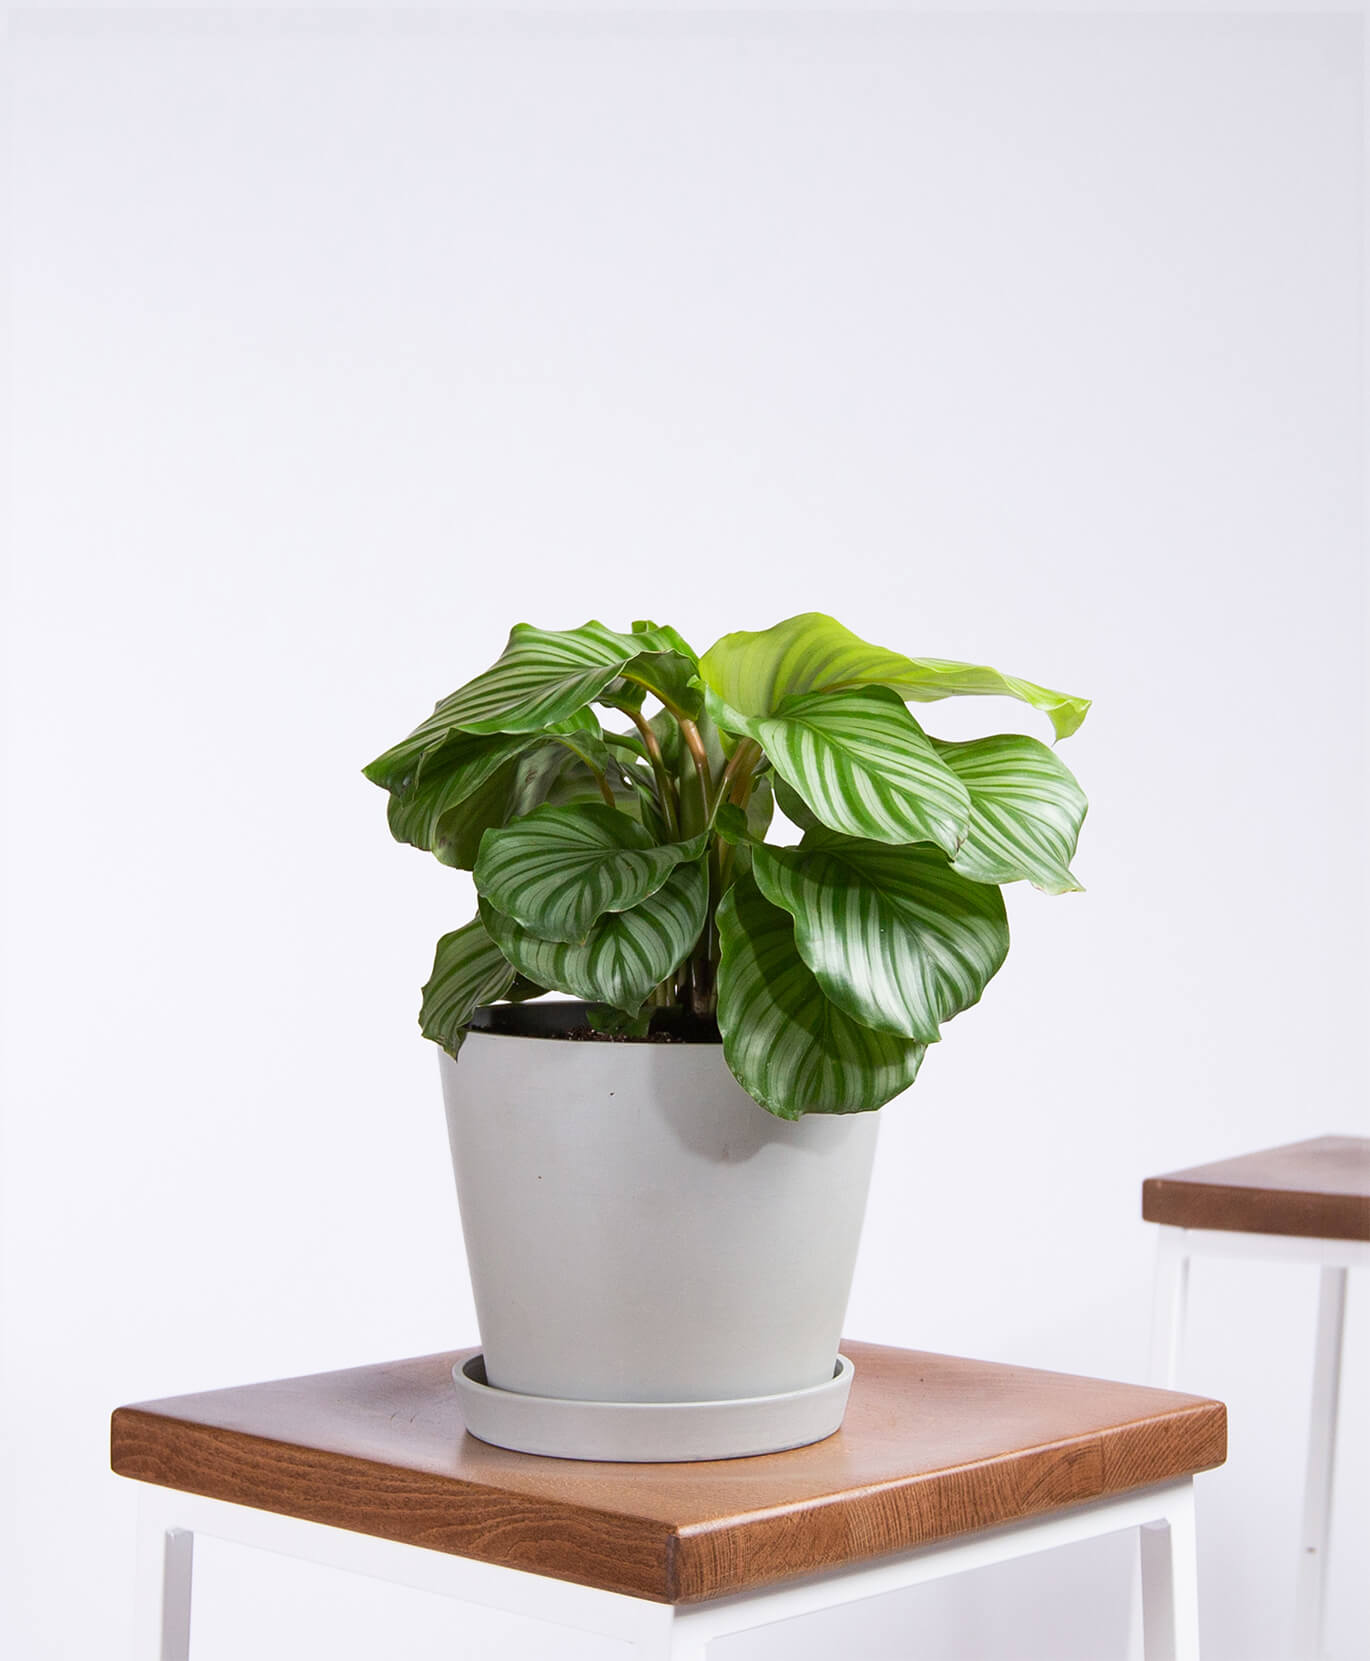 Buy Potted Bloomscape Calathea Orbifolia Indoor Plant